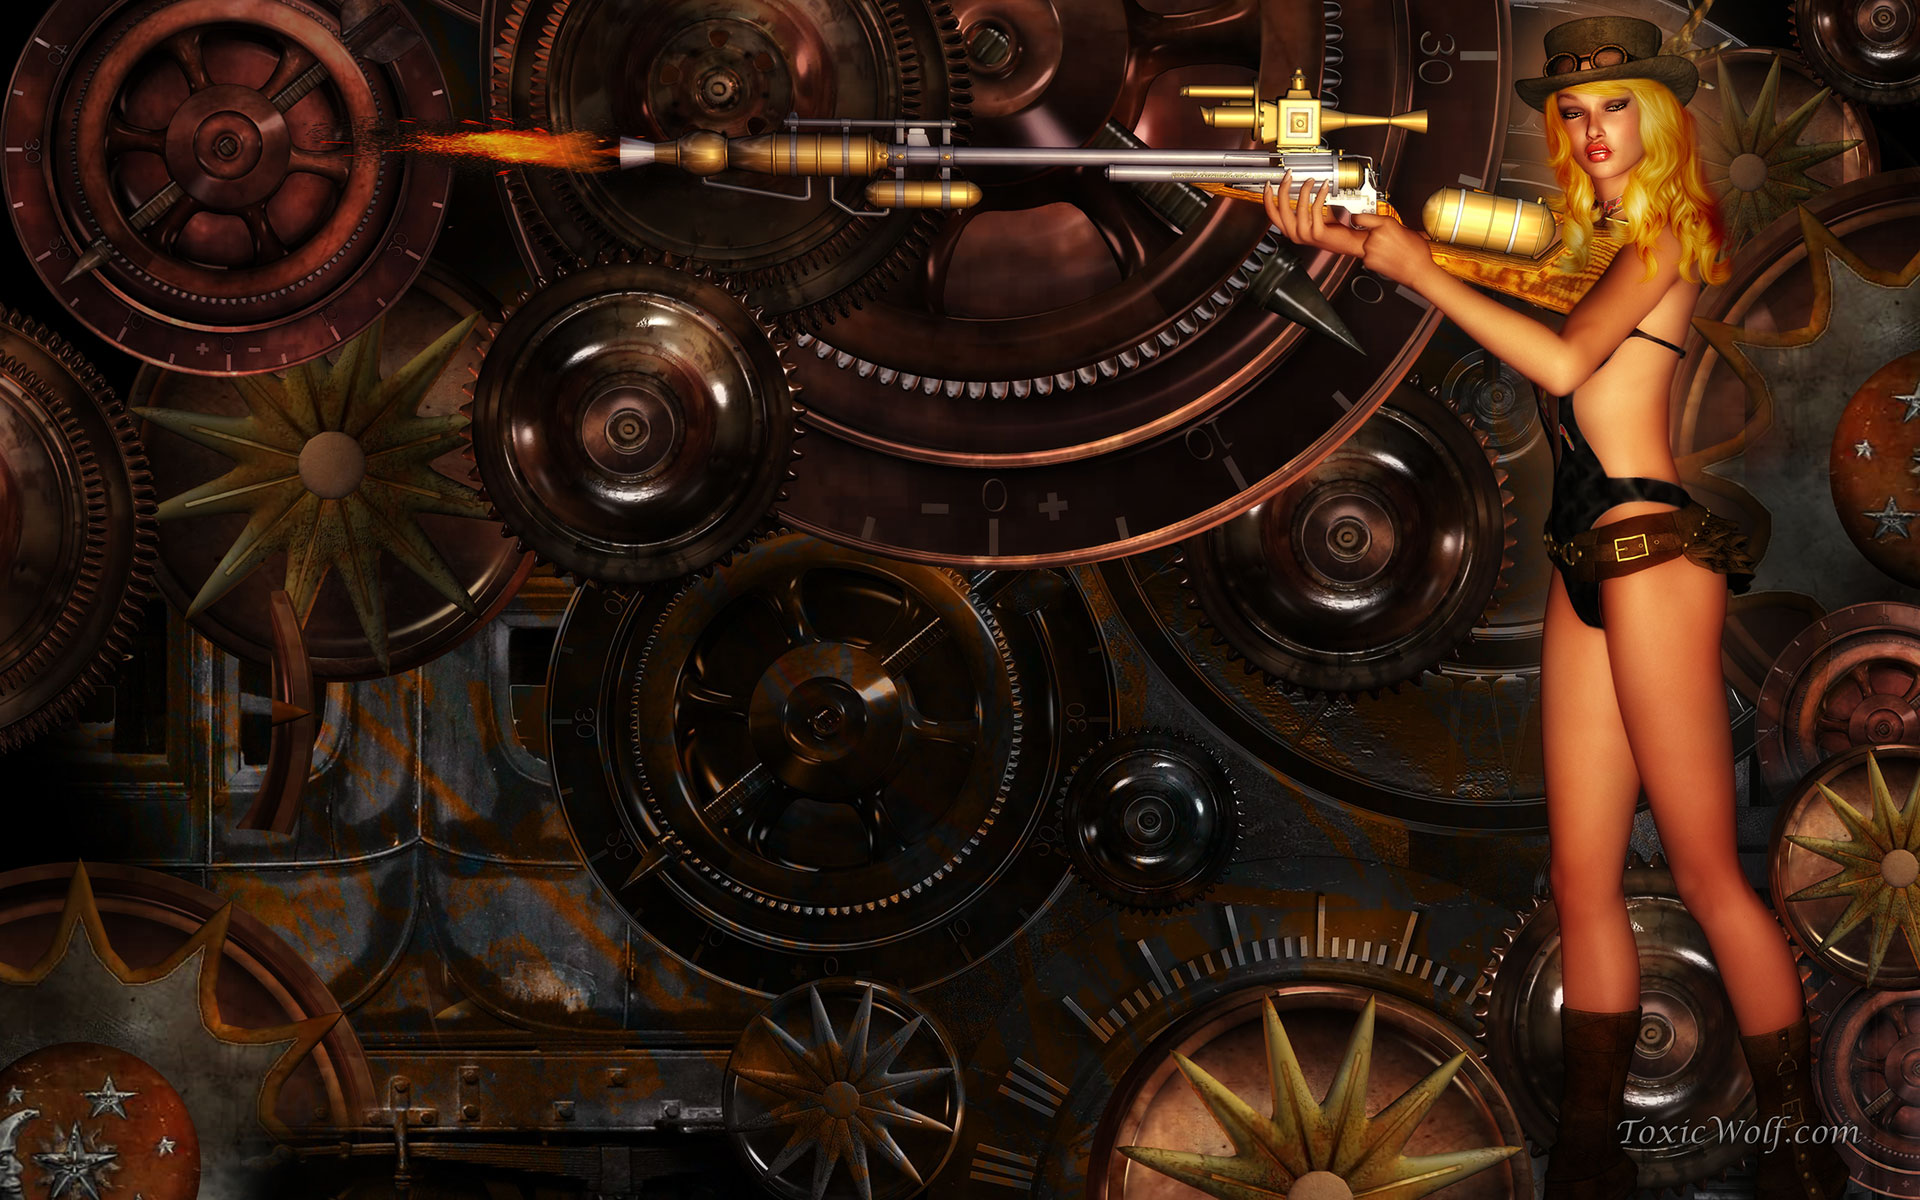 Steampunk Wallpaper 1920 wallpaper   929621 1920x1200